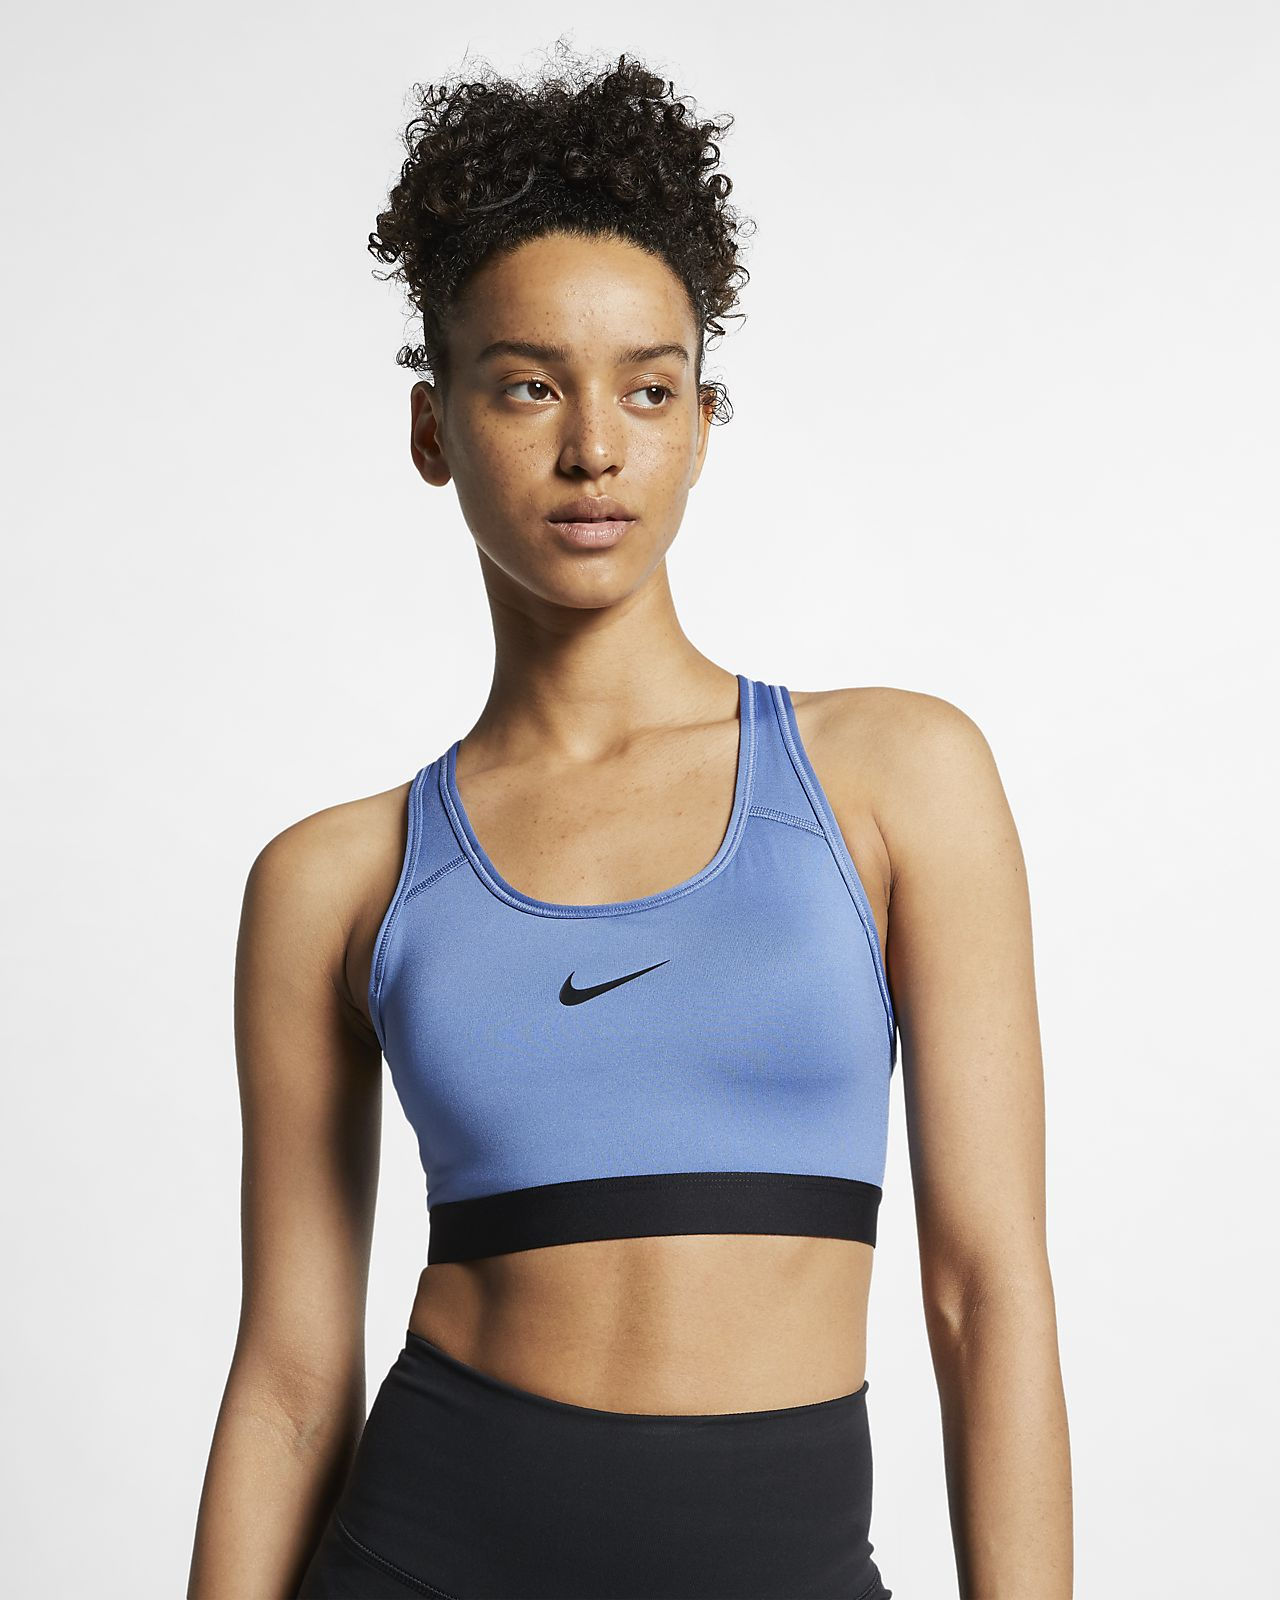 29902e16f39 Nike Classic Padded Women s Medium-Support Sports Bra. Nike.com